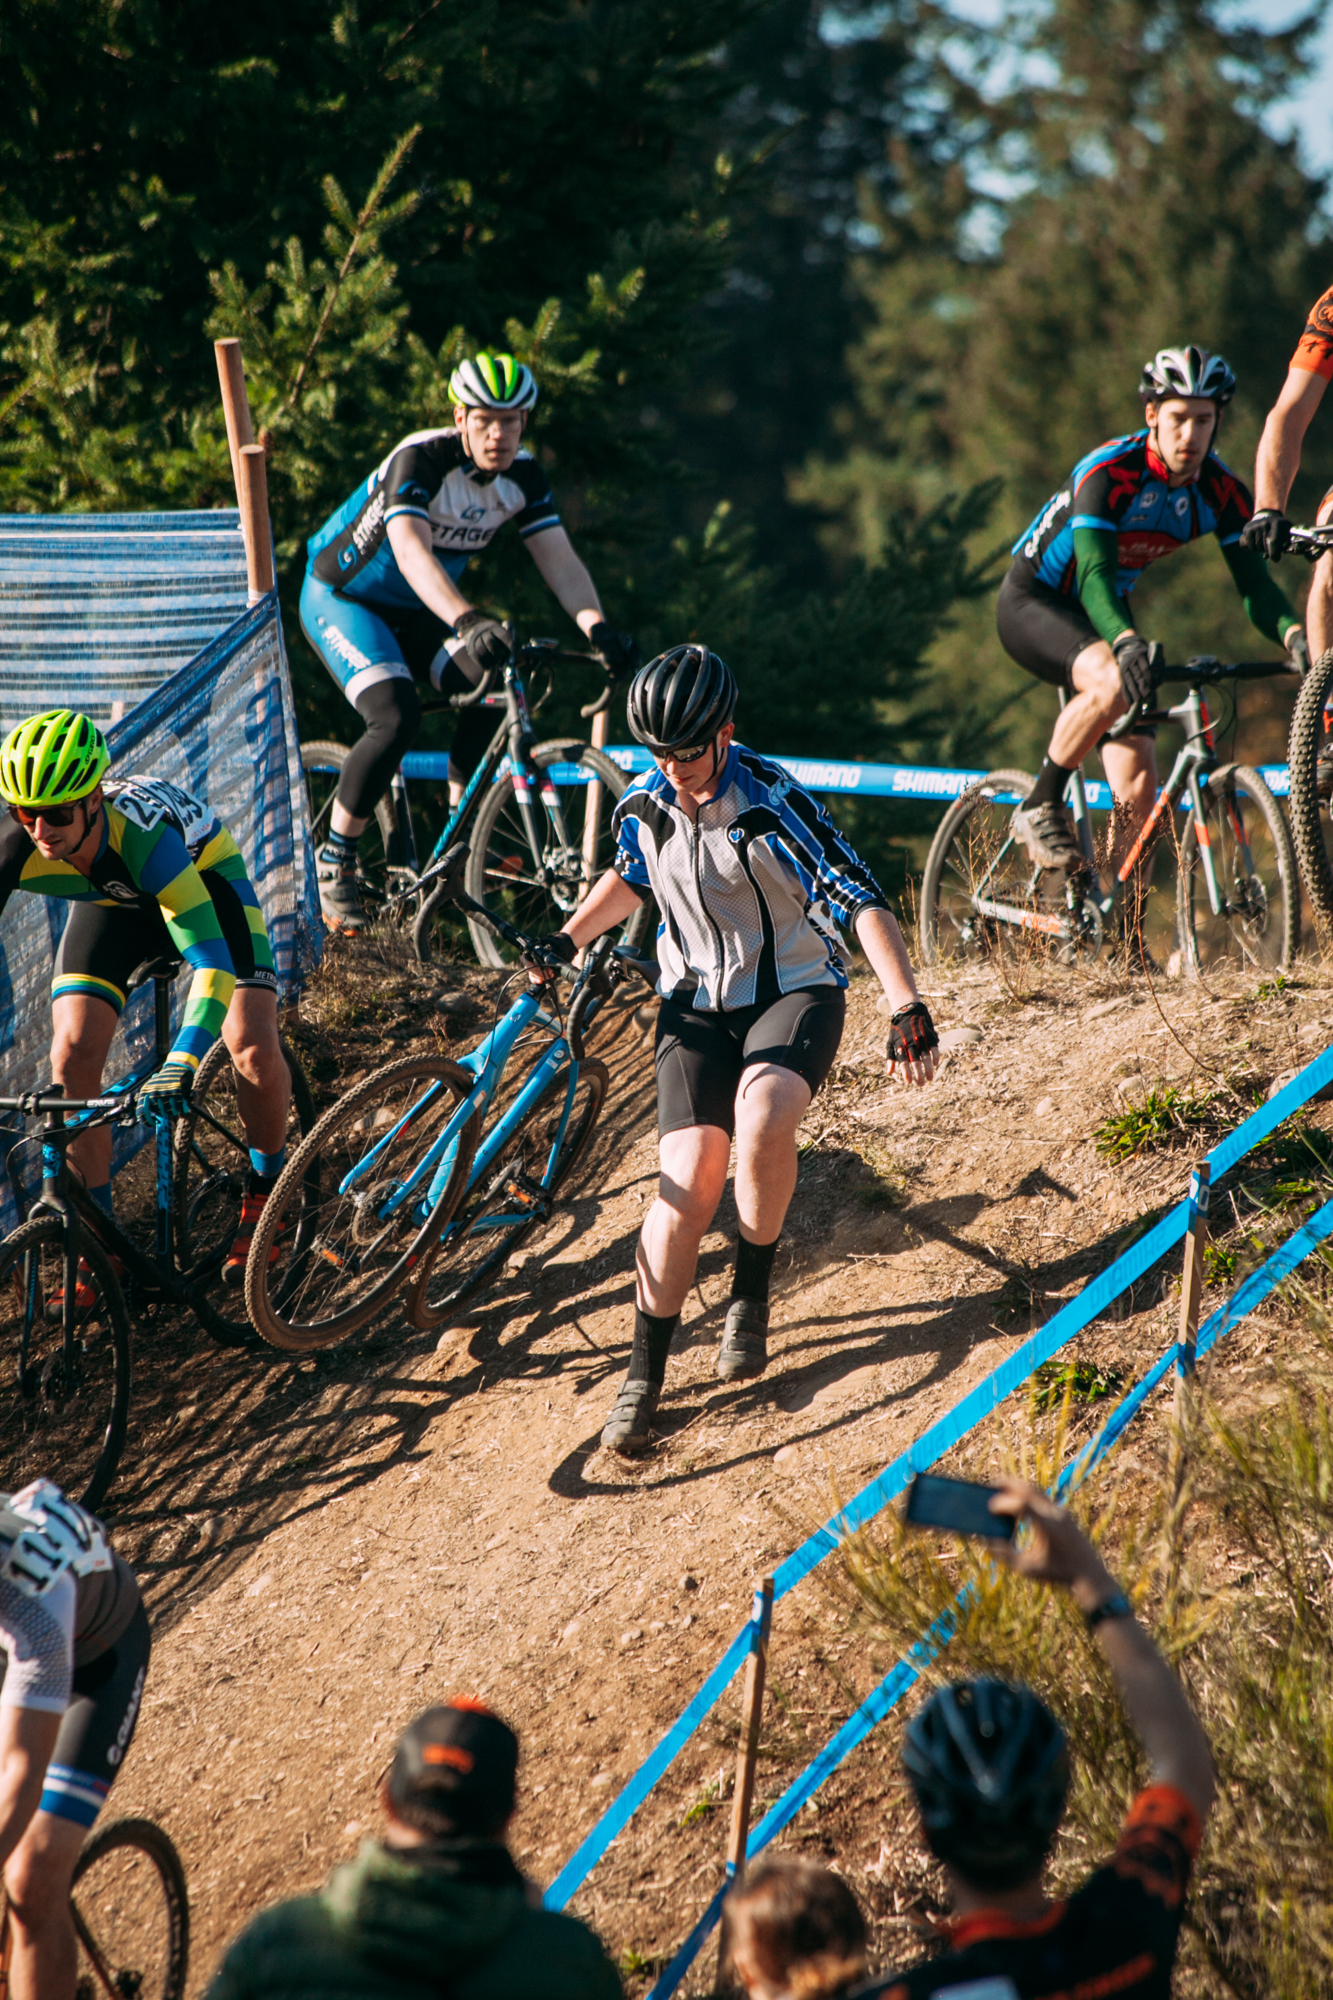 Cyclocross18_CCCX_BartonPark-mettlecycling91.jpg